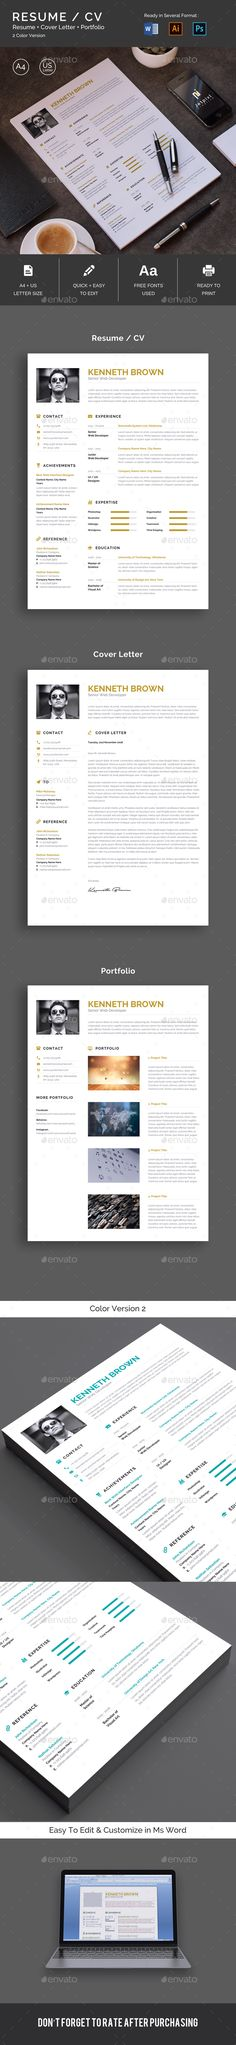 - Resumes Stationery This is Modern & Professional Resume/CV Template. The Template design is friendly use with strong typographic and structure. This Resume Template is Clean, Modern, Professional, and very well organized. Resume Layout, One Page Resume, Resume Cv, Cv Design, Resume Design, Graphic Design, Best Resume Template, Cv Template, Stationery Templates